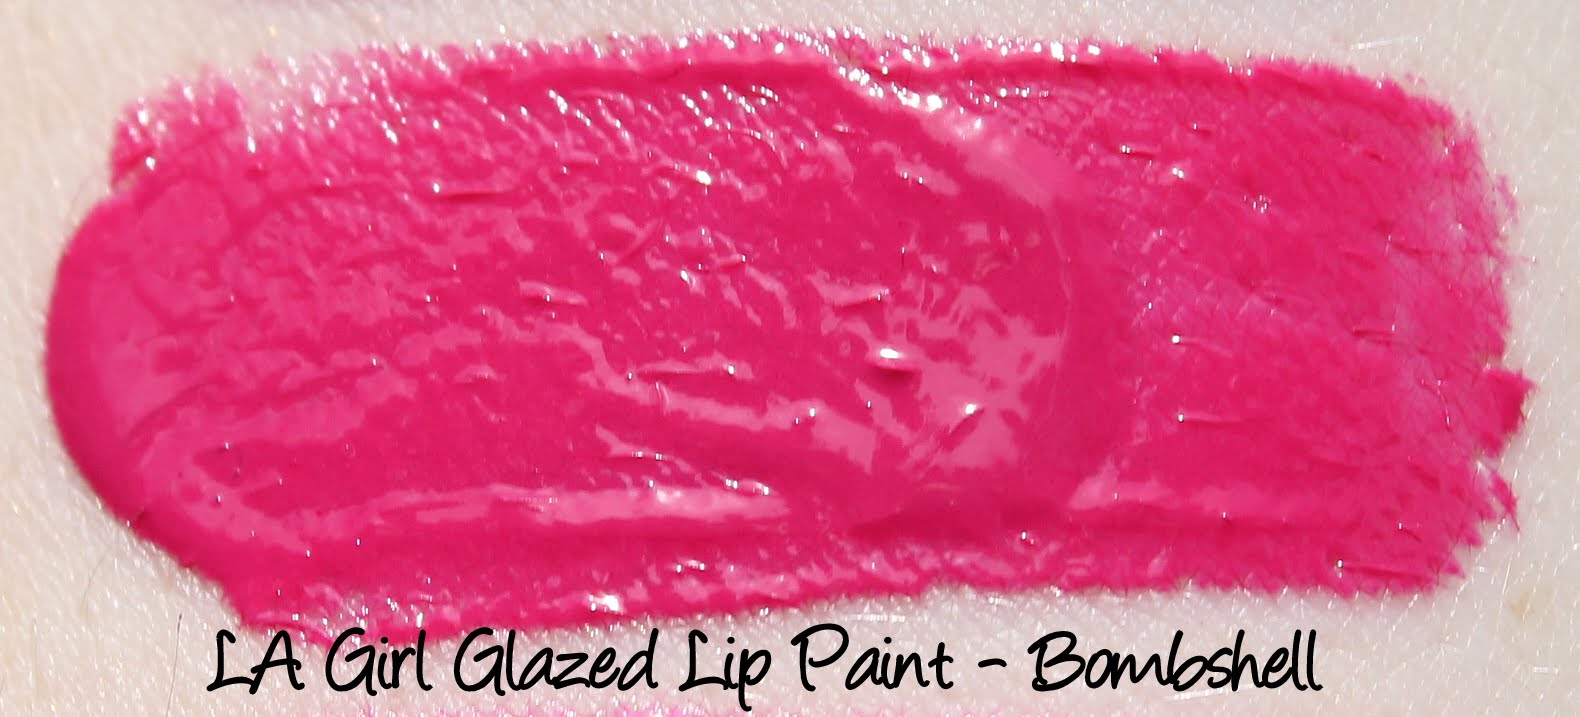 LA Girl Glazed Lip Paints - Bombshell Swatches & Review